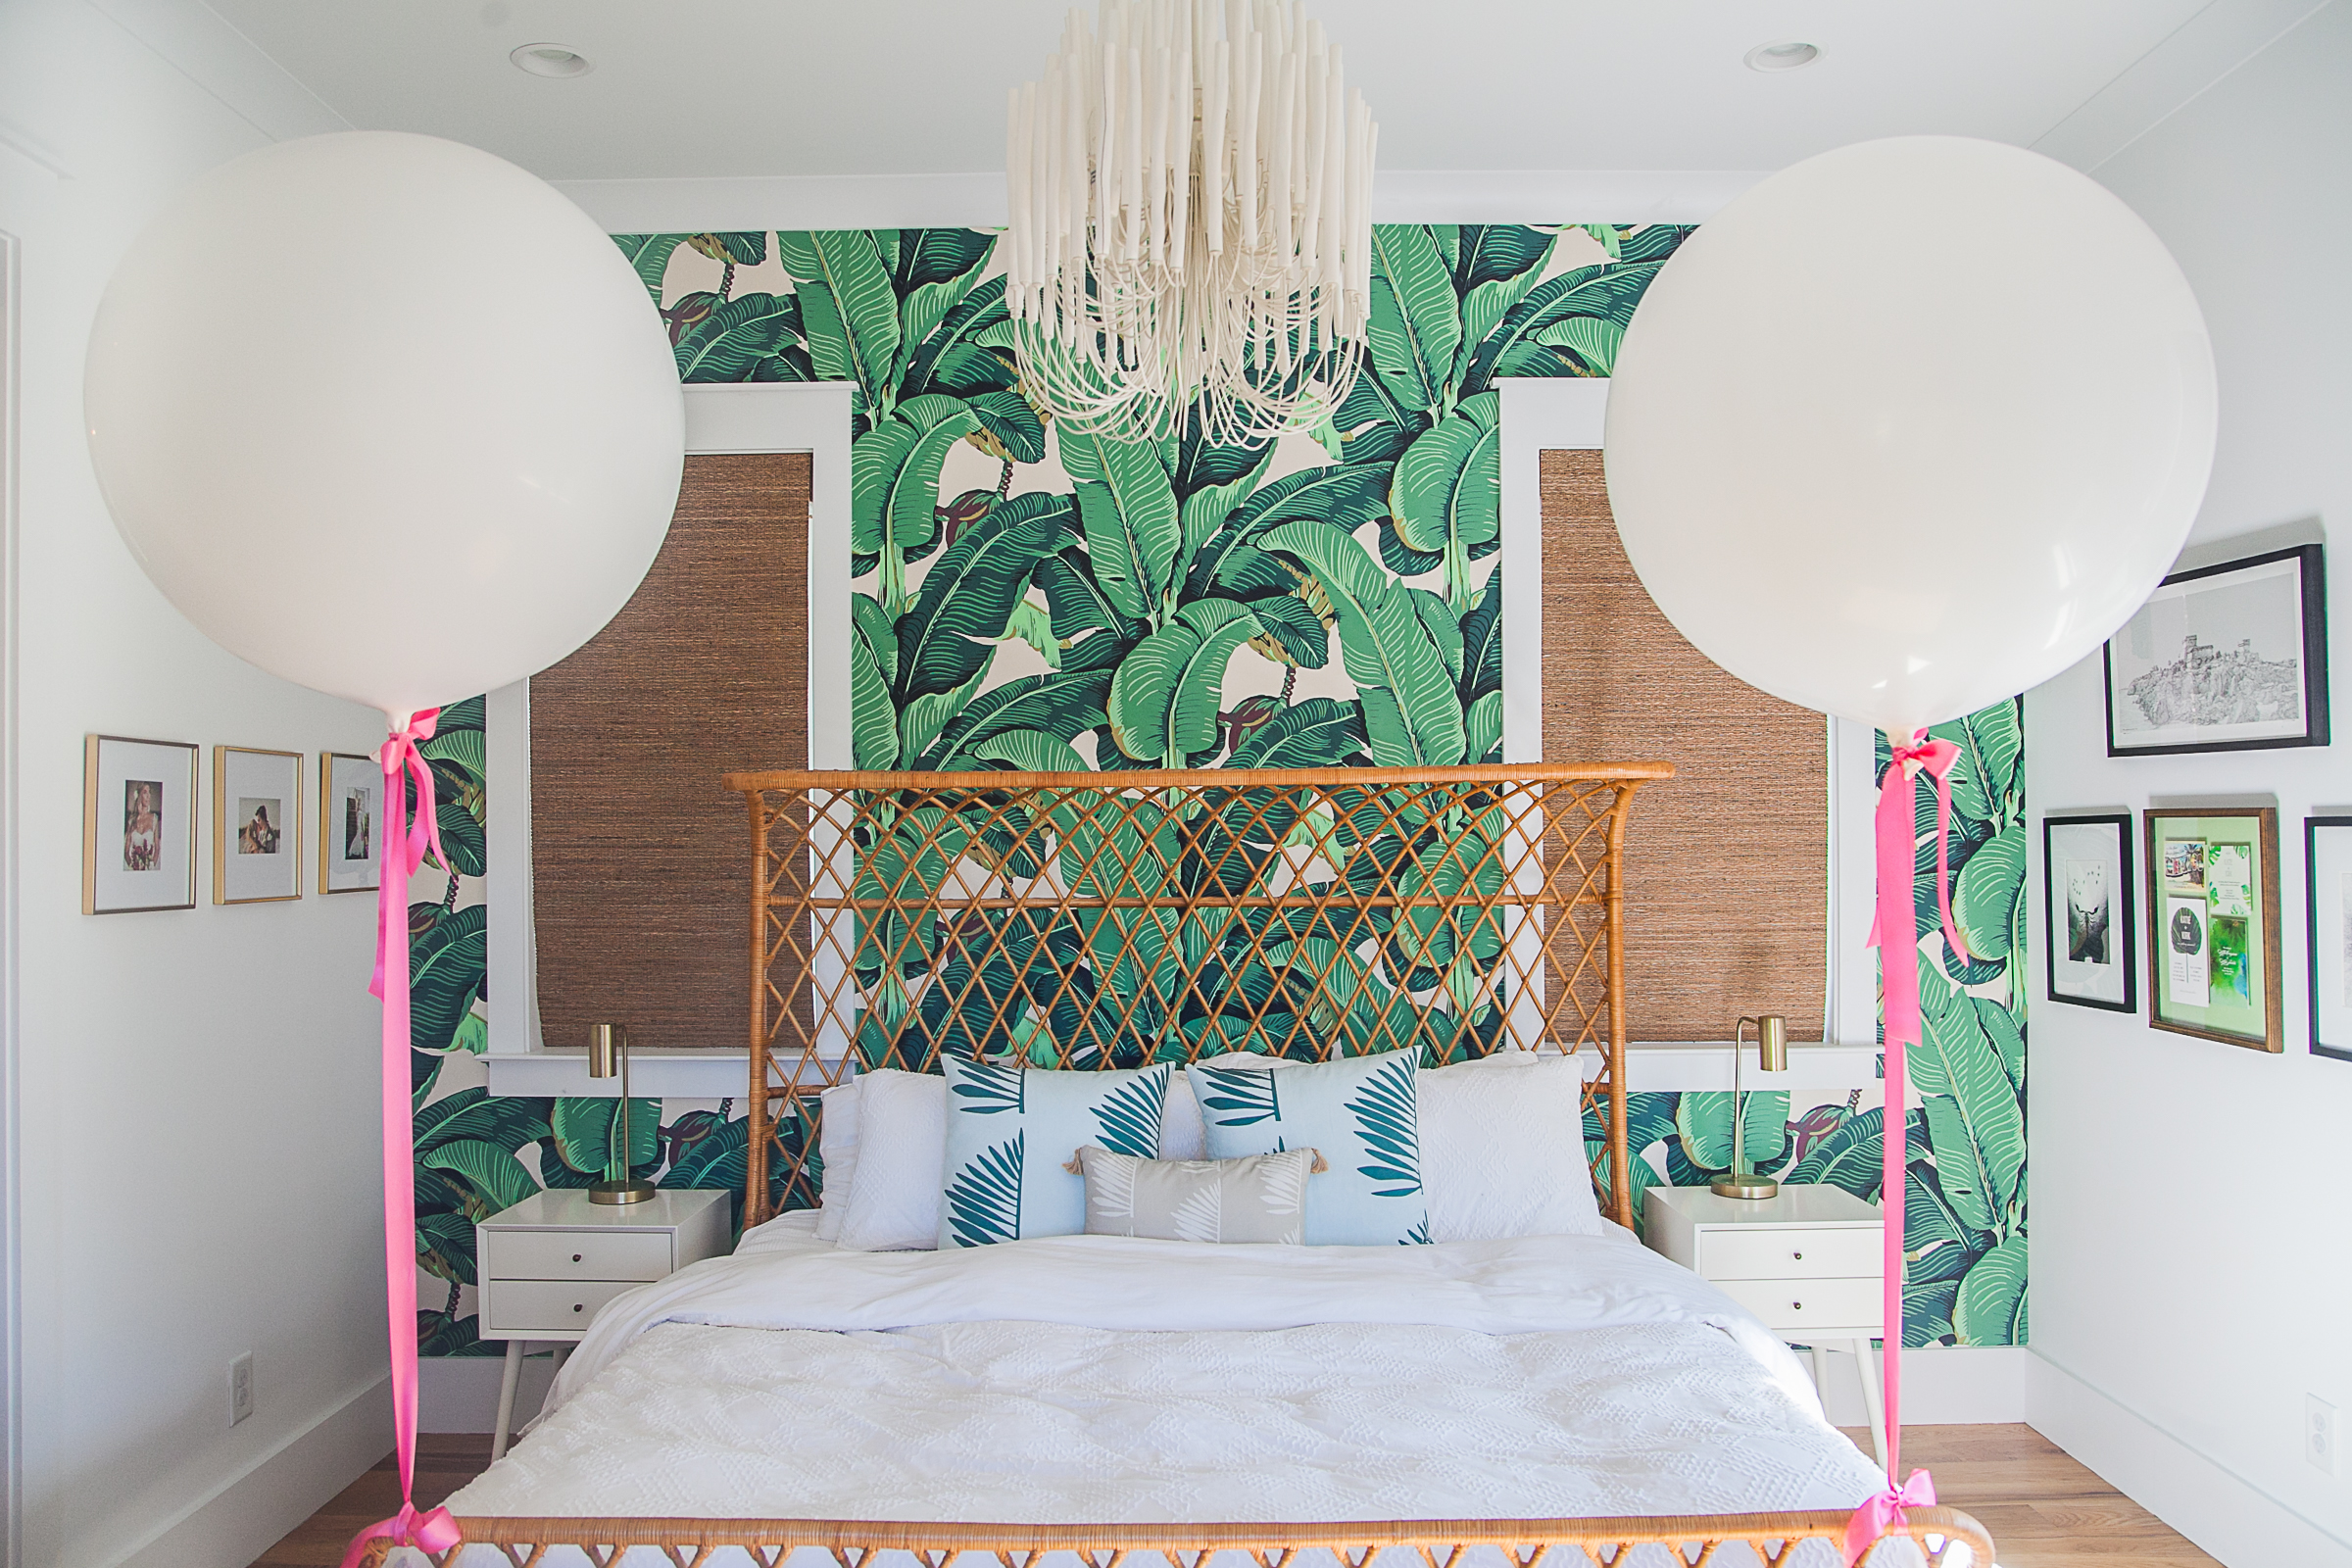 Beachy bedroom with green palm leaf wallpaper  //  designed by Cayleigh Hopkins of The Petal Report  //  on A Lowcountry Wedding Magazine